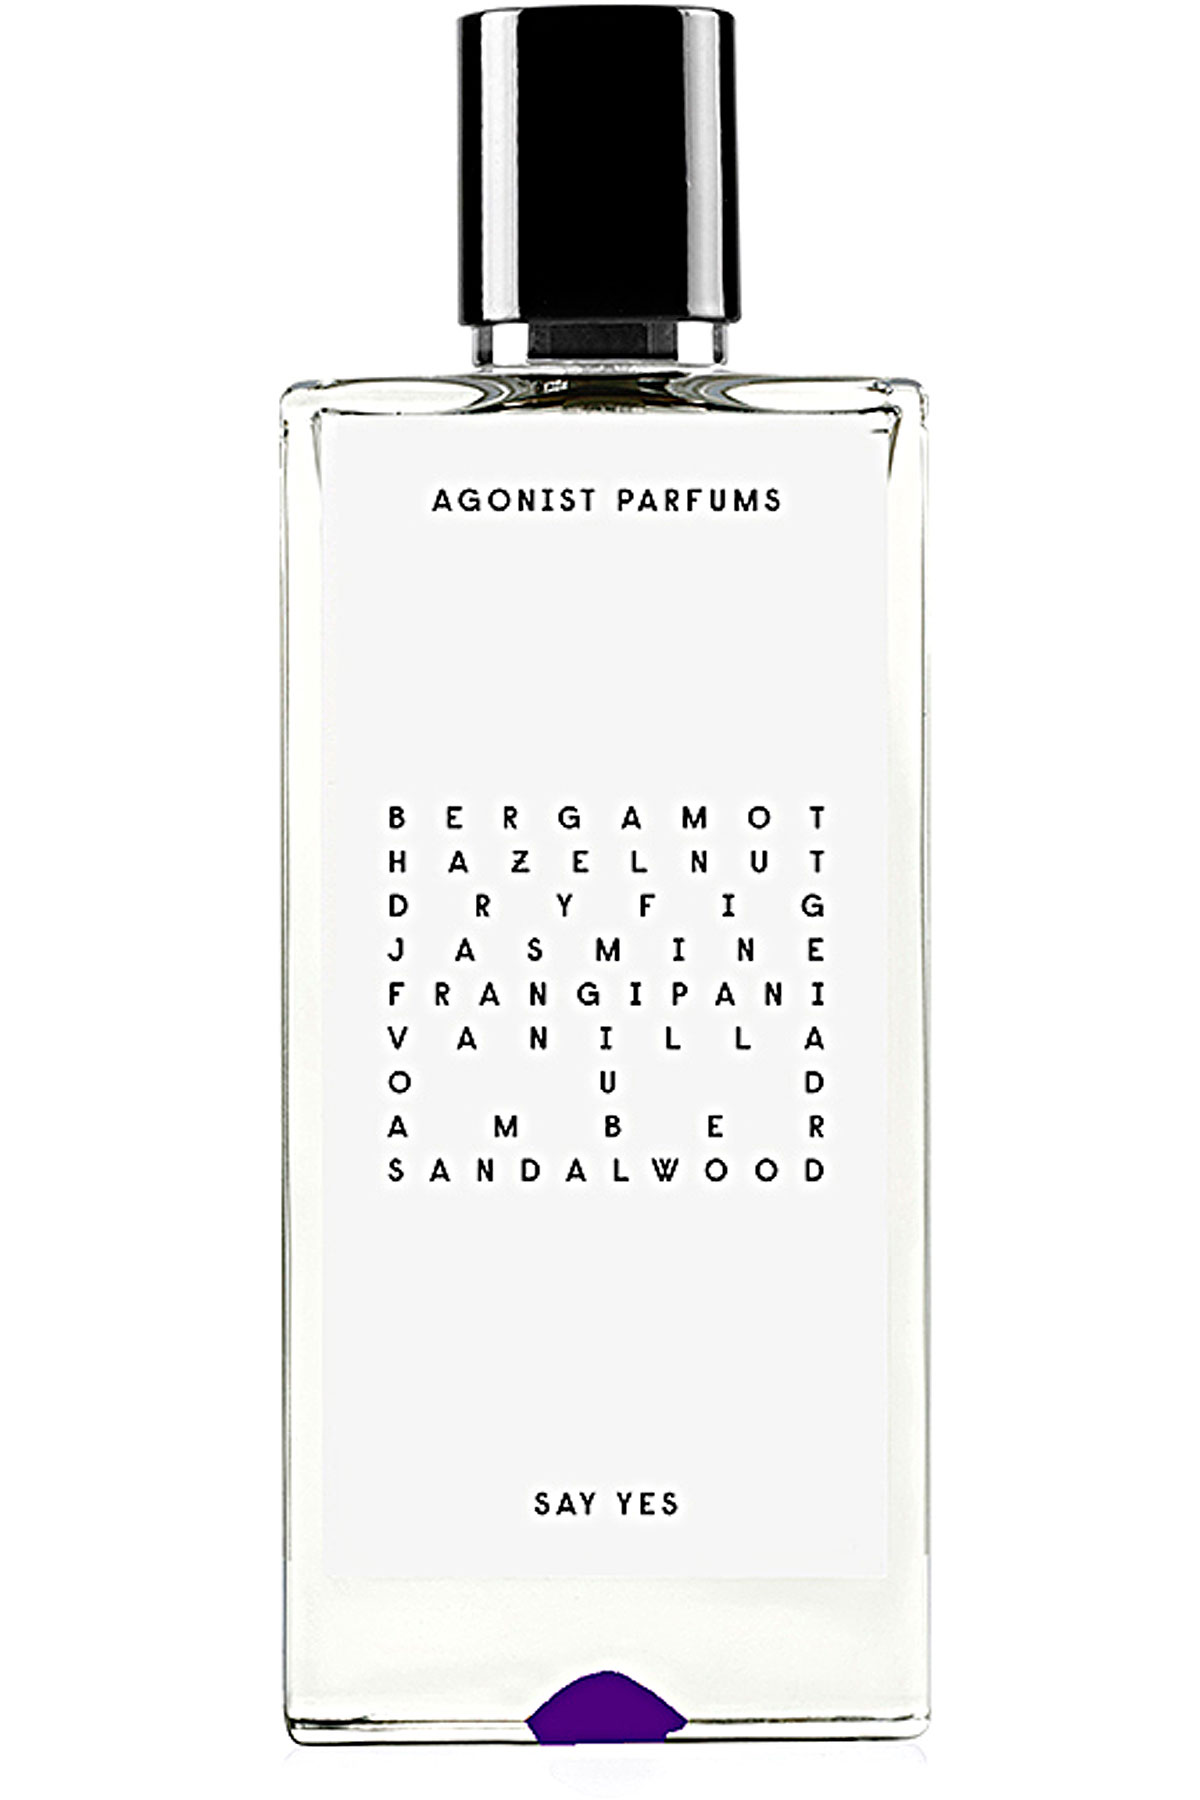 Agonist Fragrances for Men, Say Yes Eau De Parfum 50 Ml, 2019, 50 ml